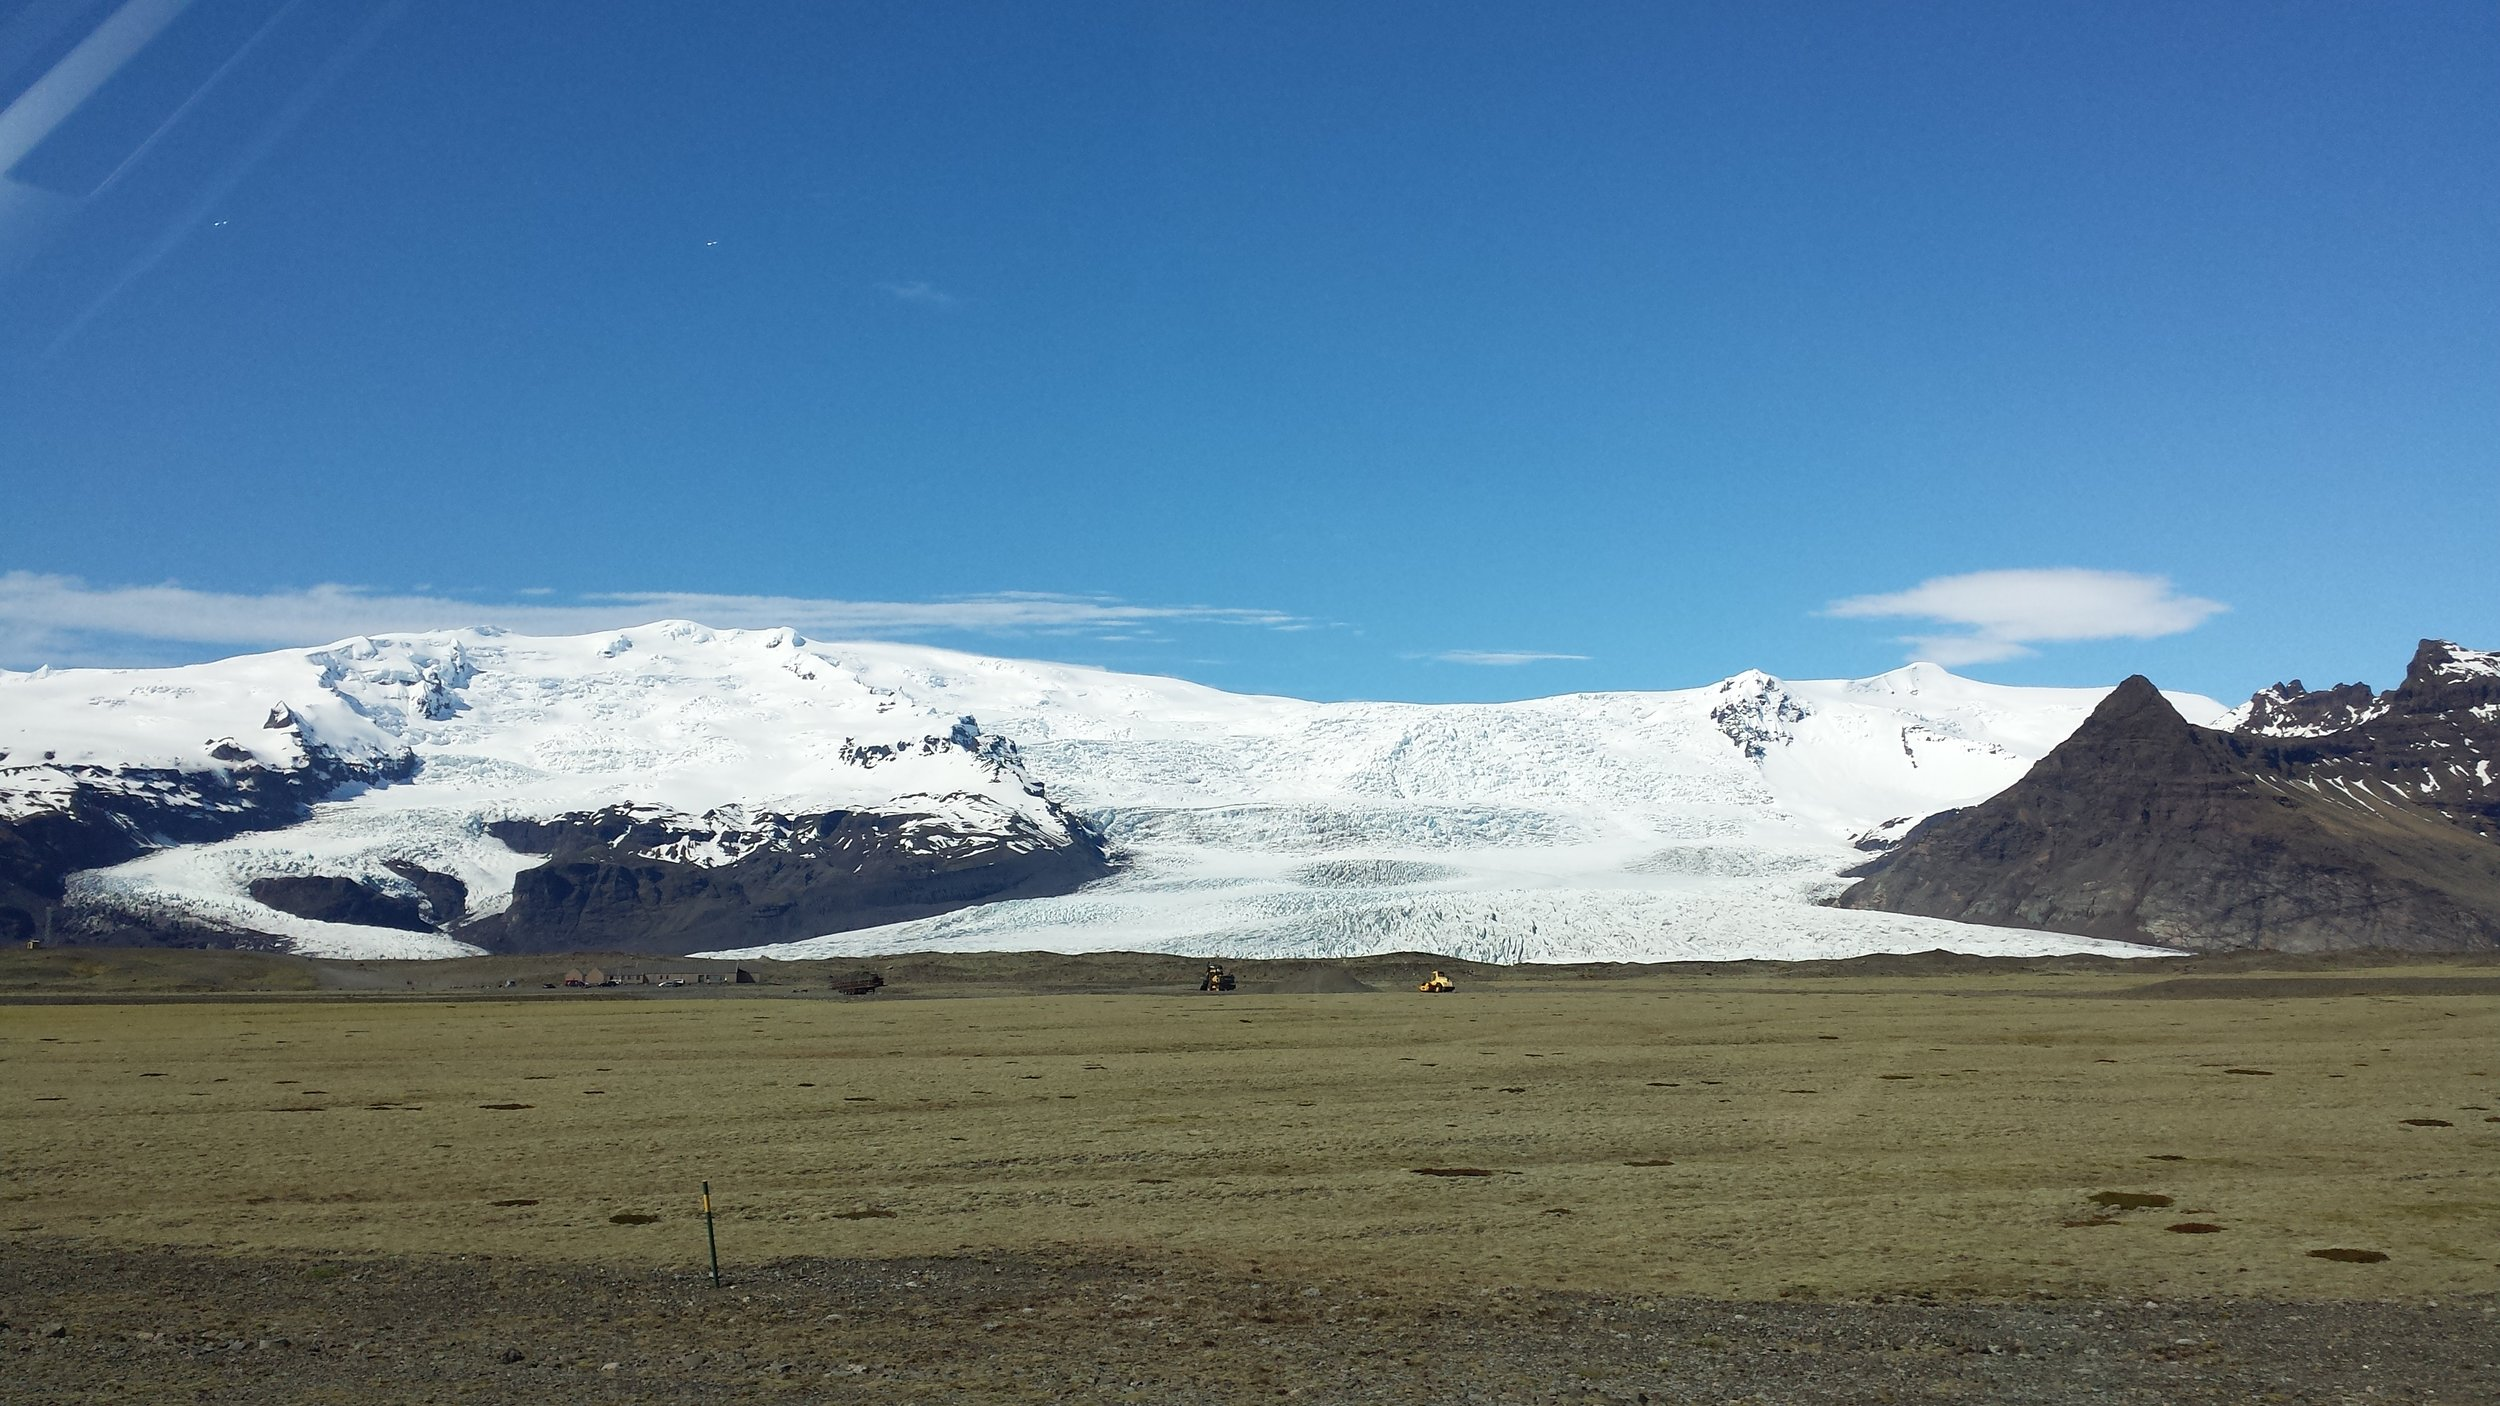 Beautiful glacier views from the road.